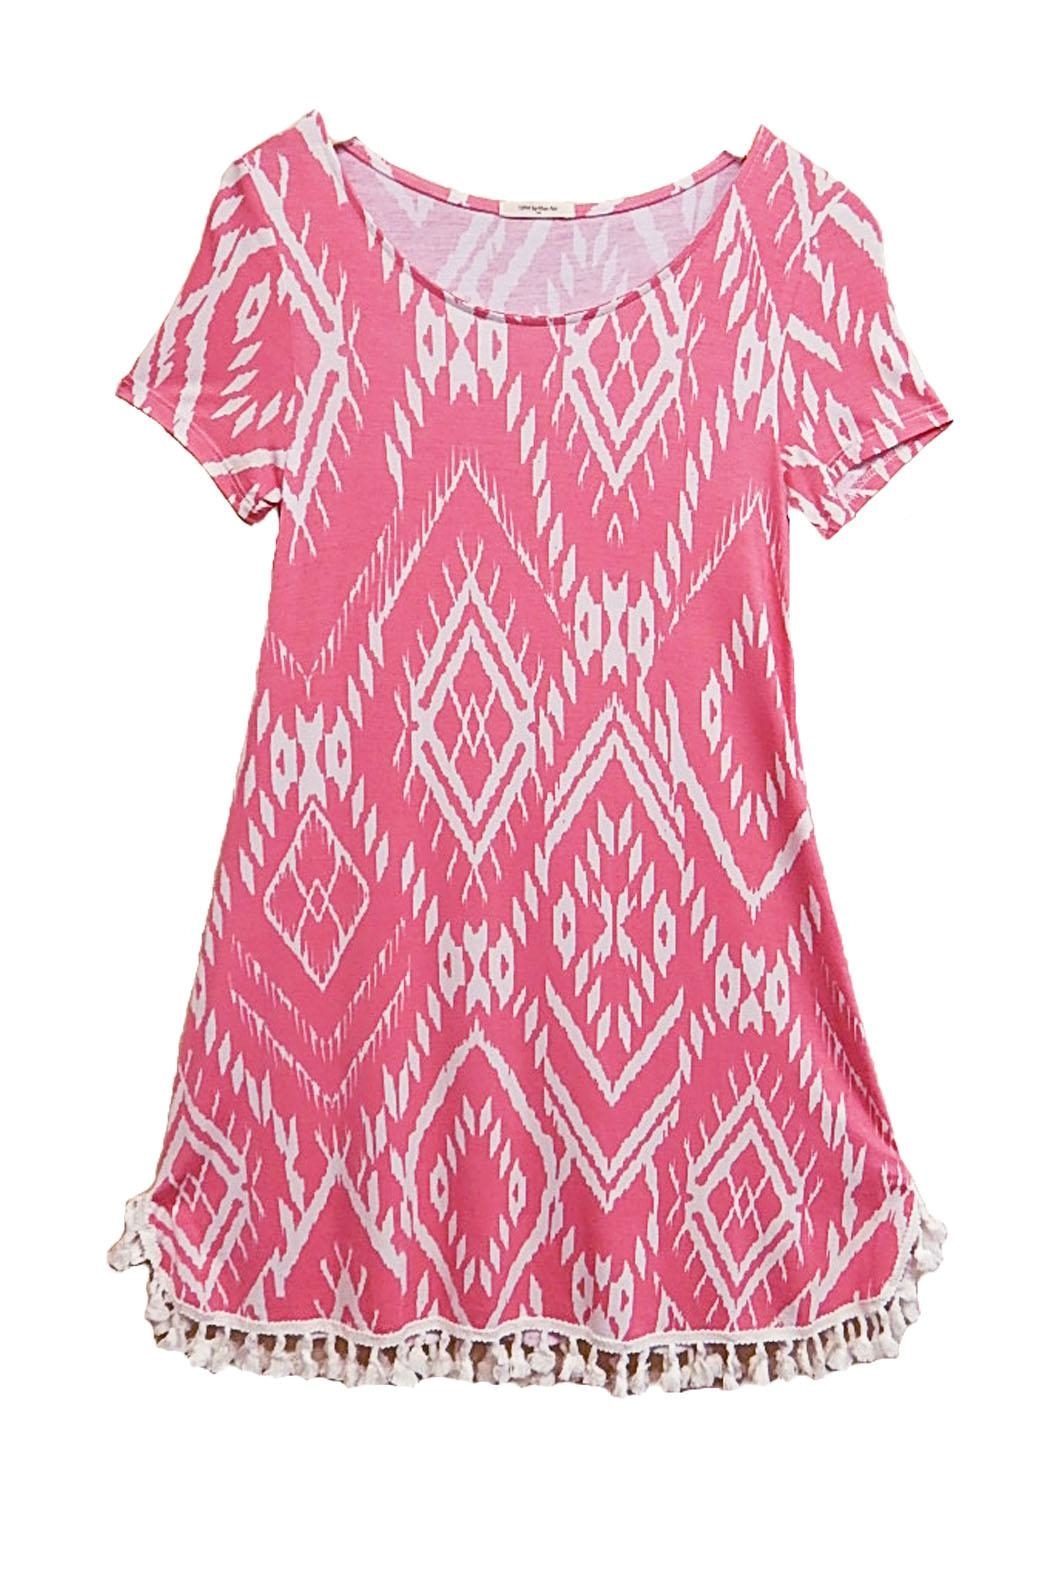 12pm by Mon Ami Pink Tassel Dress - Main Image